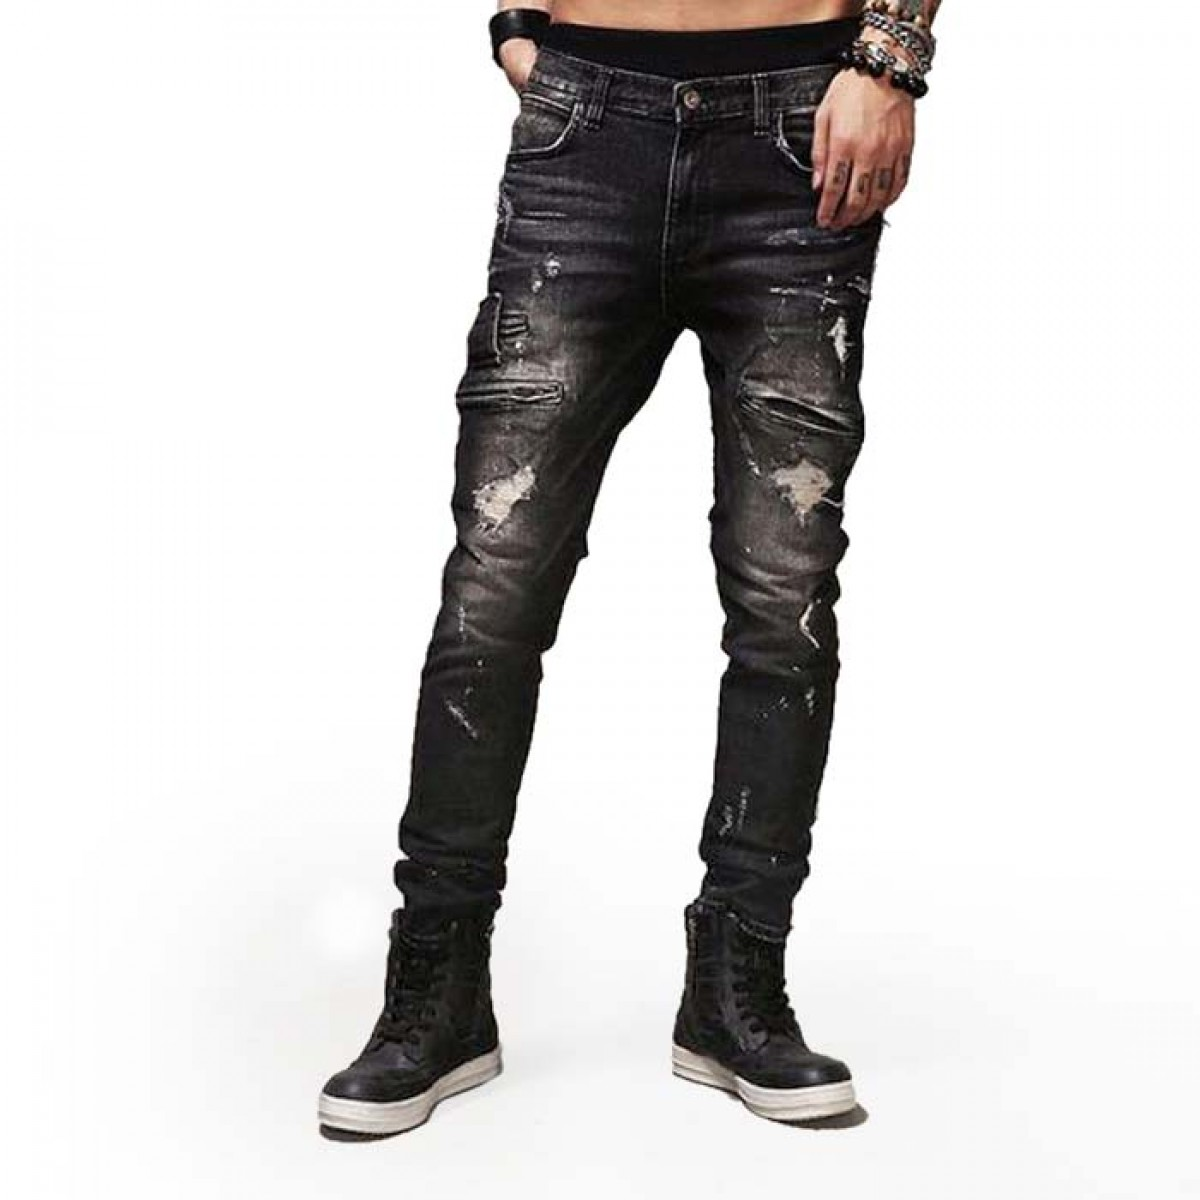 mens ripped jeans black sizes 3038 laticci